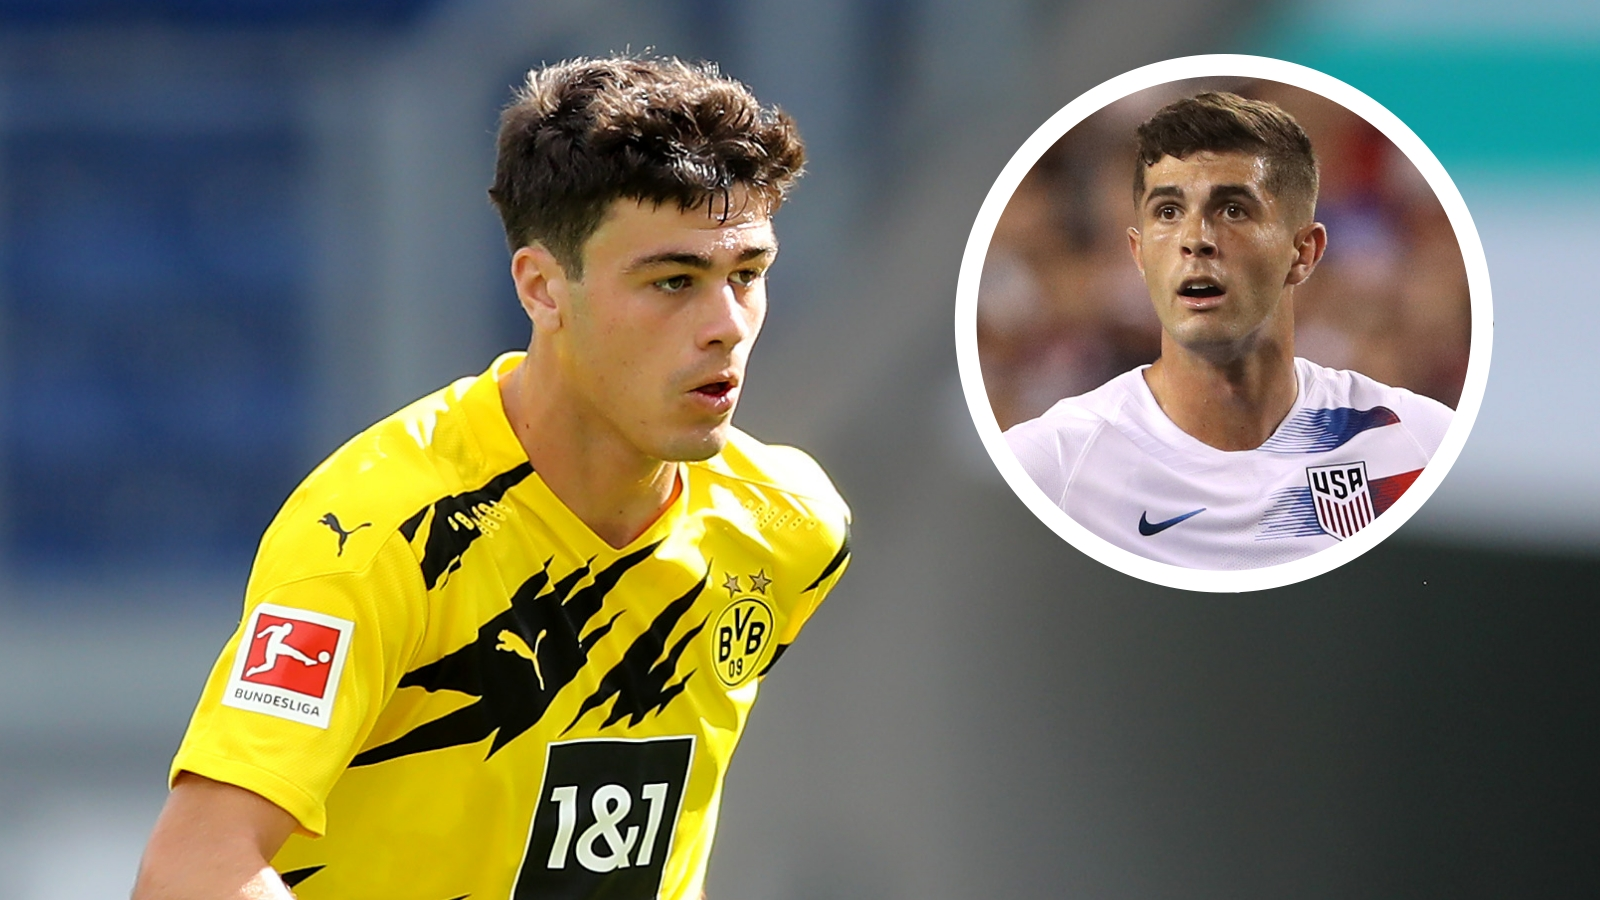 Pulisic excited by Reyna's potential as Chelsea & USMNT star says 'sky's the limit' for Dortmund teenager